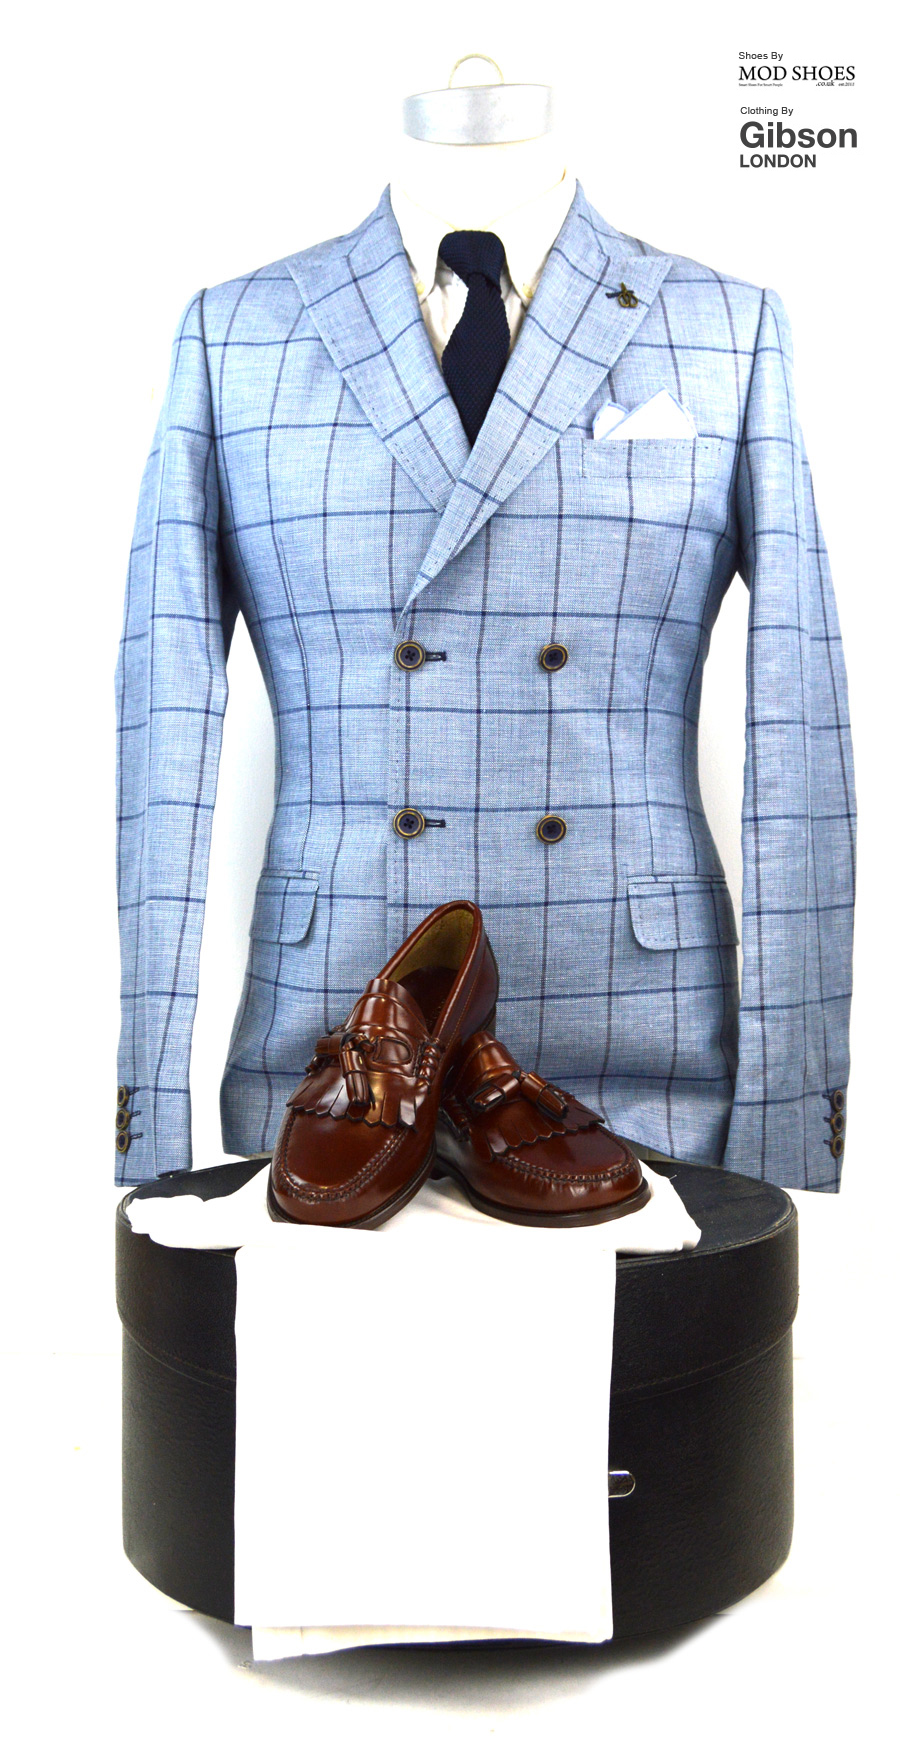 modshoes-chestnut-dukes-with-light-blue-gibson-jacket